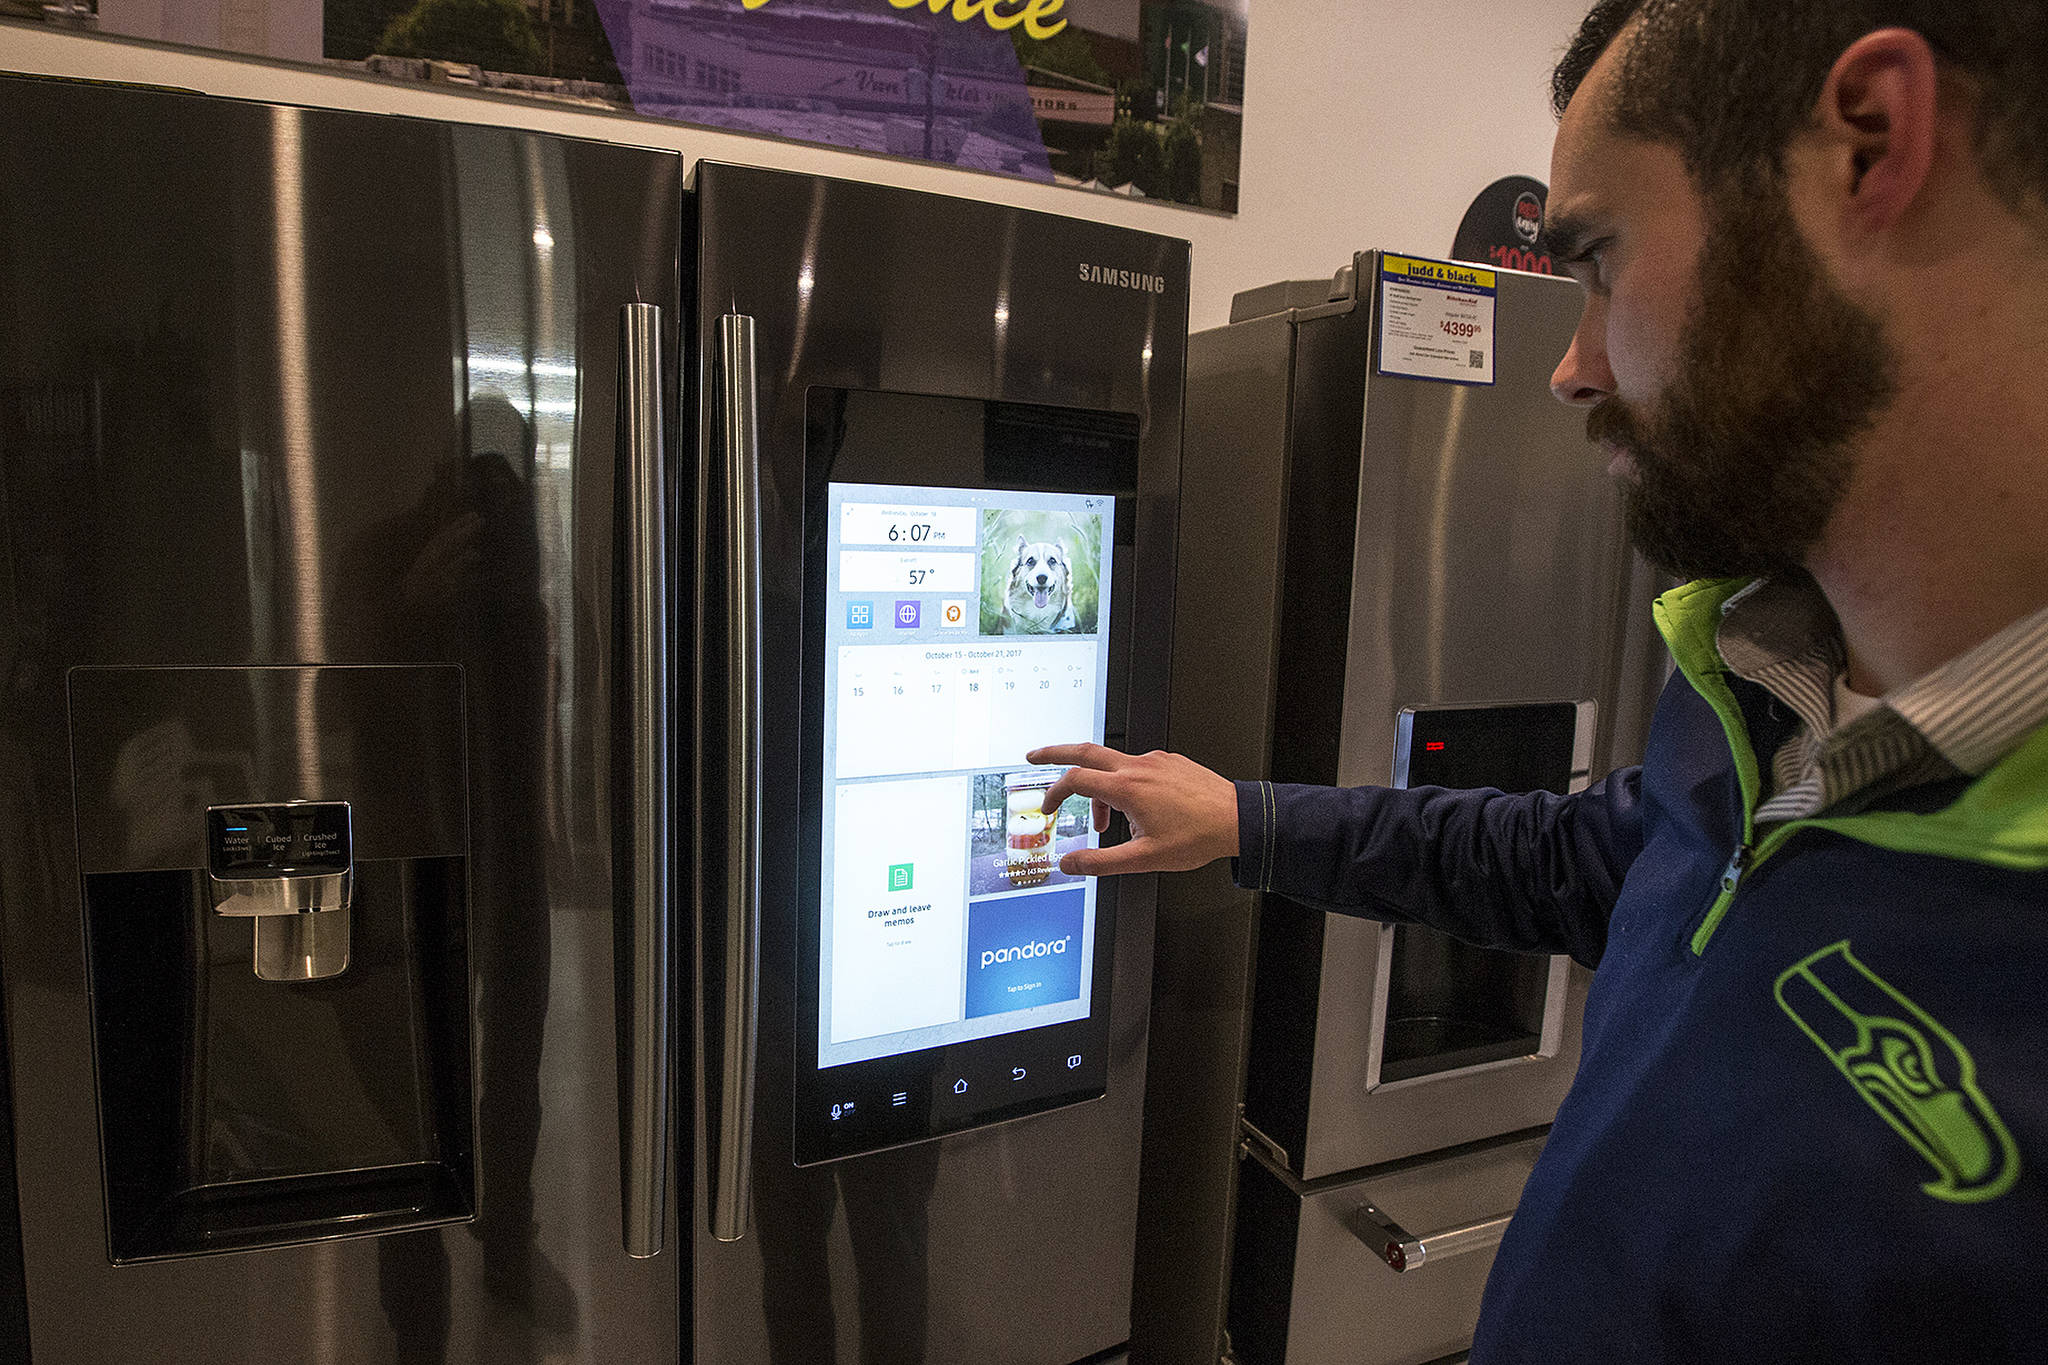 Taylor Long, a sales associate at Judd & Black, flips through the touchscreen on Samsung's Family Hub refrigerator that will be one of the many products on display and sale at the Everett Fall Home Show on Oct. 27, 28 and 29 at Xfinity Arena in Everett. (Ian Terry / The Herald)